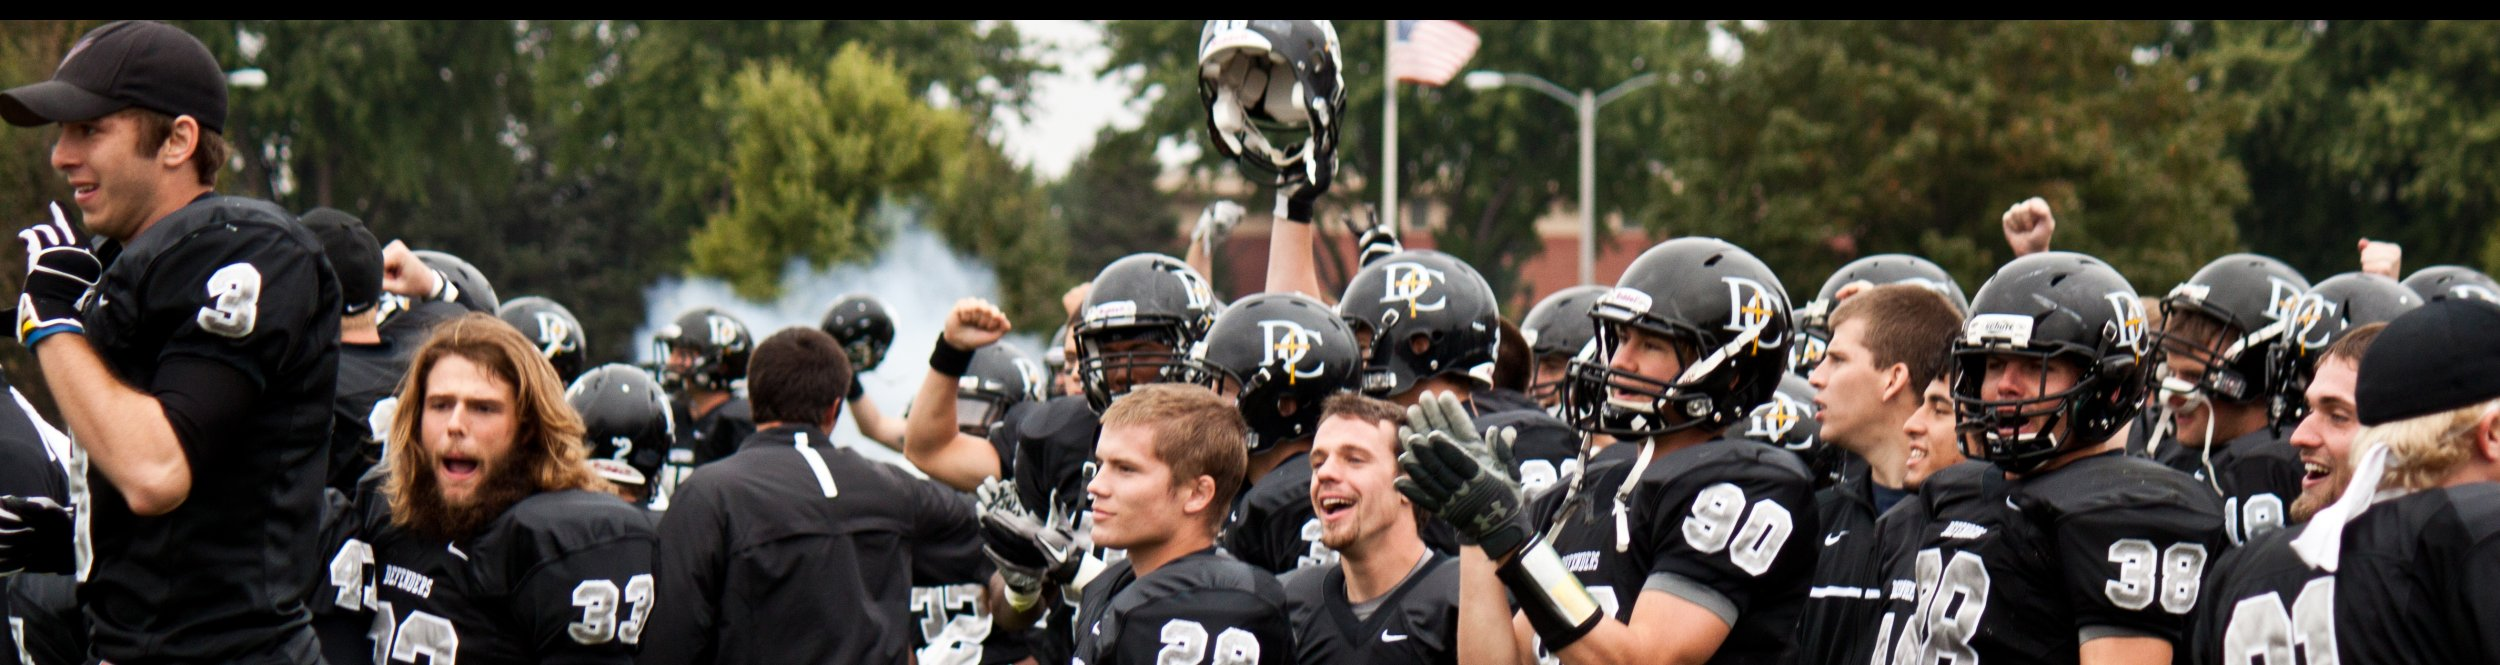 Football players raise their helmets and clap at Dordt.